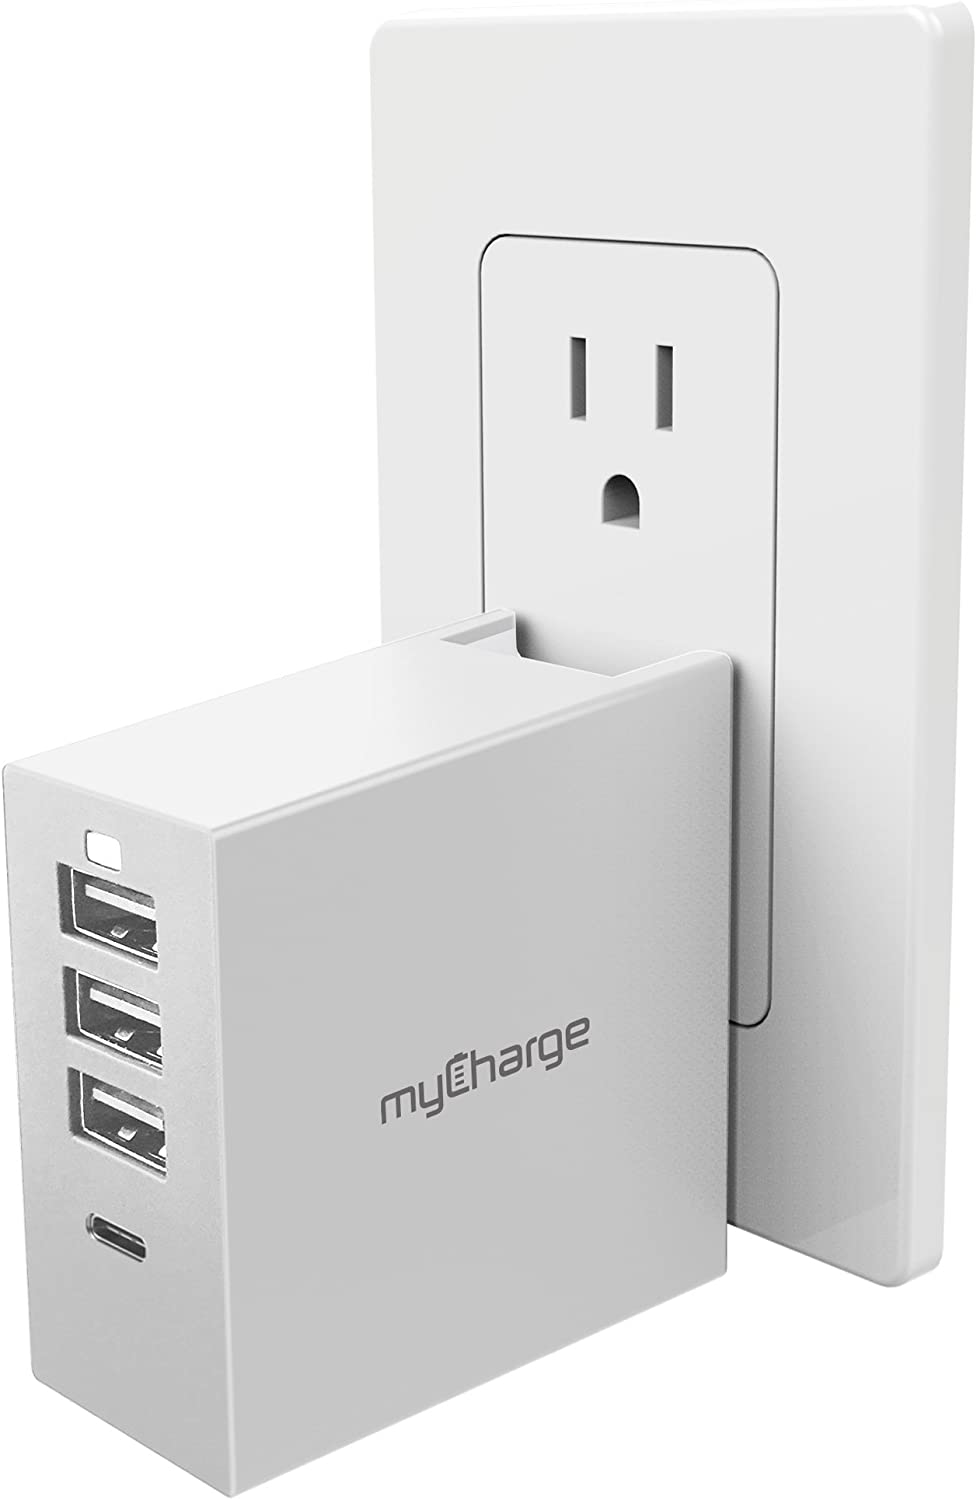 myCharge USB C Charger 30W Wall Adapter 4 Port Power Base 4.0A Output Type C Fast Charging QC3.0, Foldable Wall Plug Travel Phone Charger Cube for Apple iPhone, iPad, iPod, Android for Samsung Galaxy